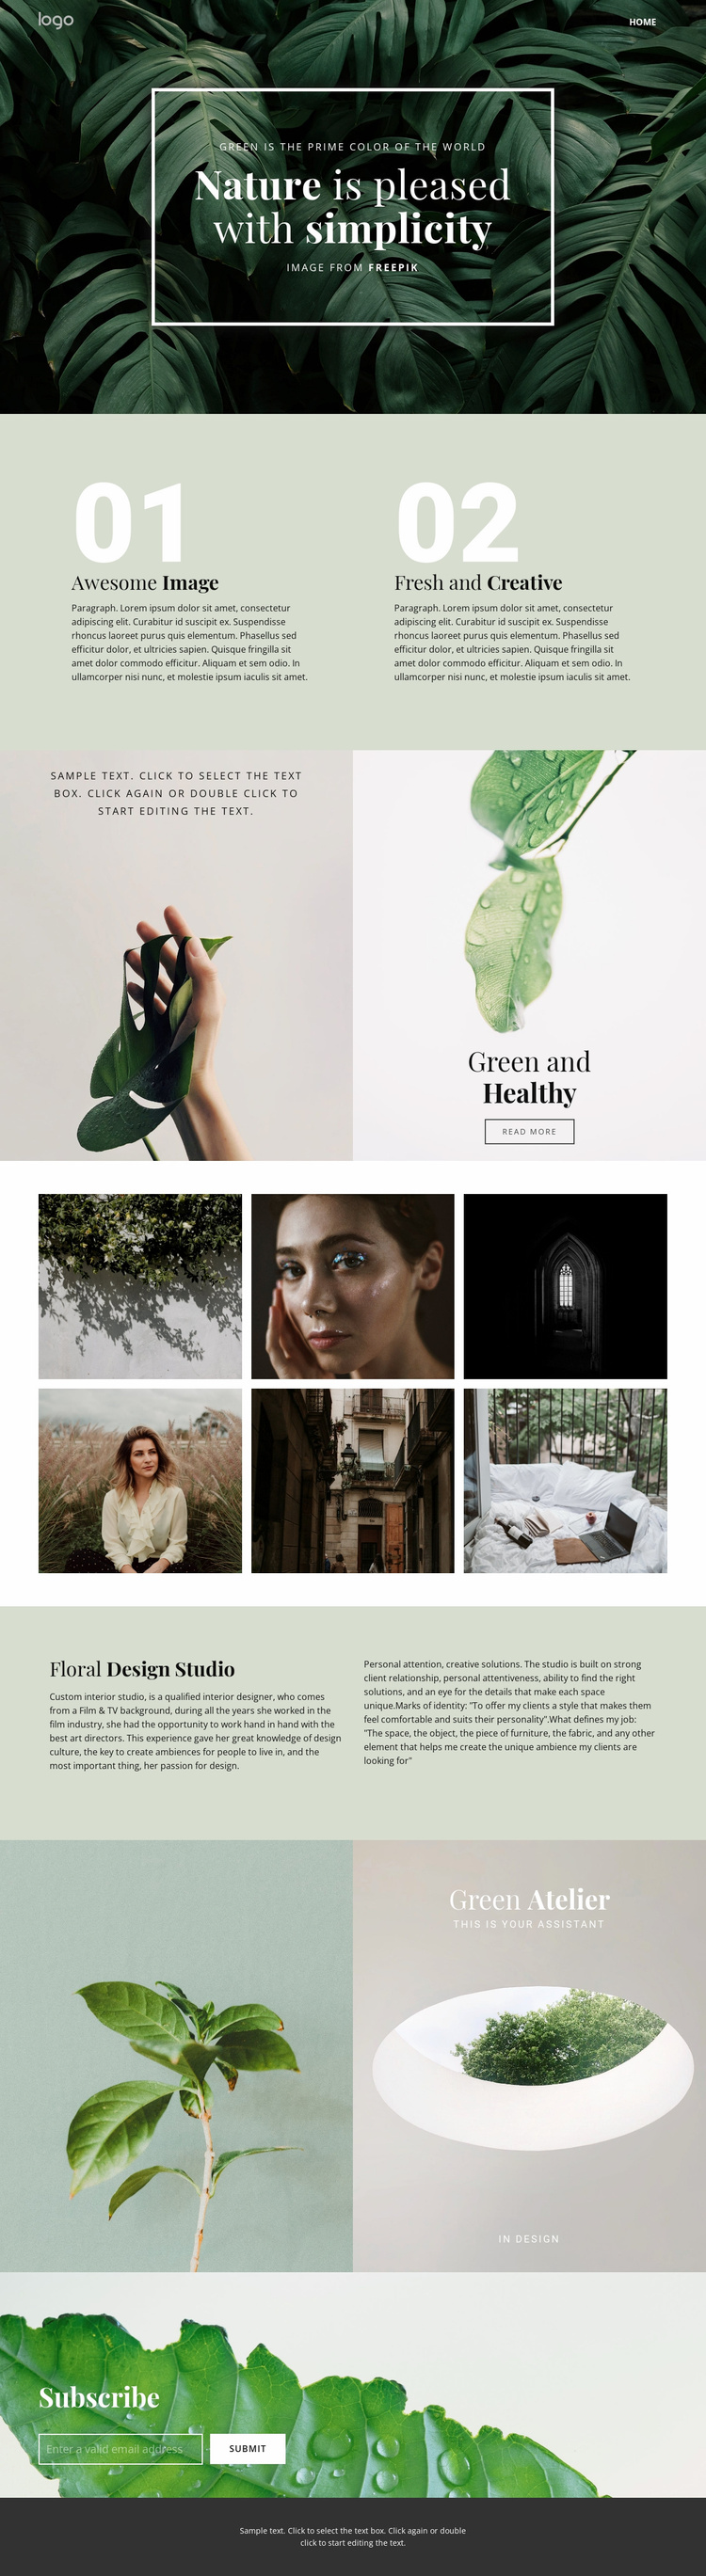 Beauty simplicity of nature Landing Page